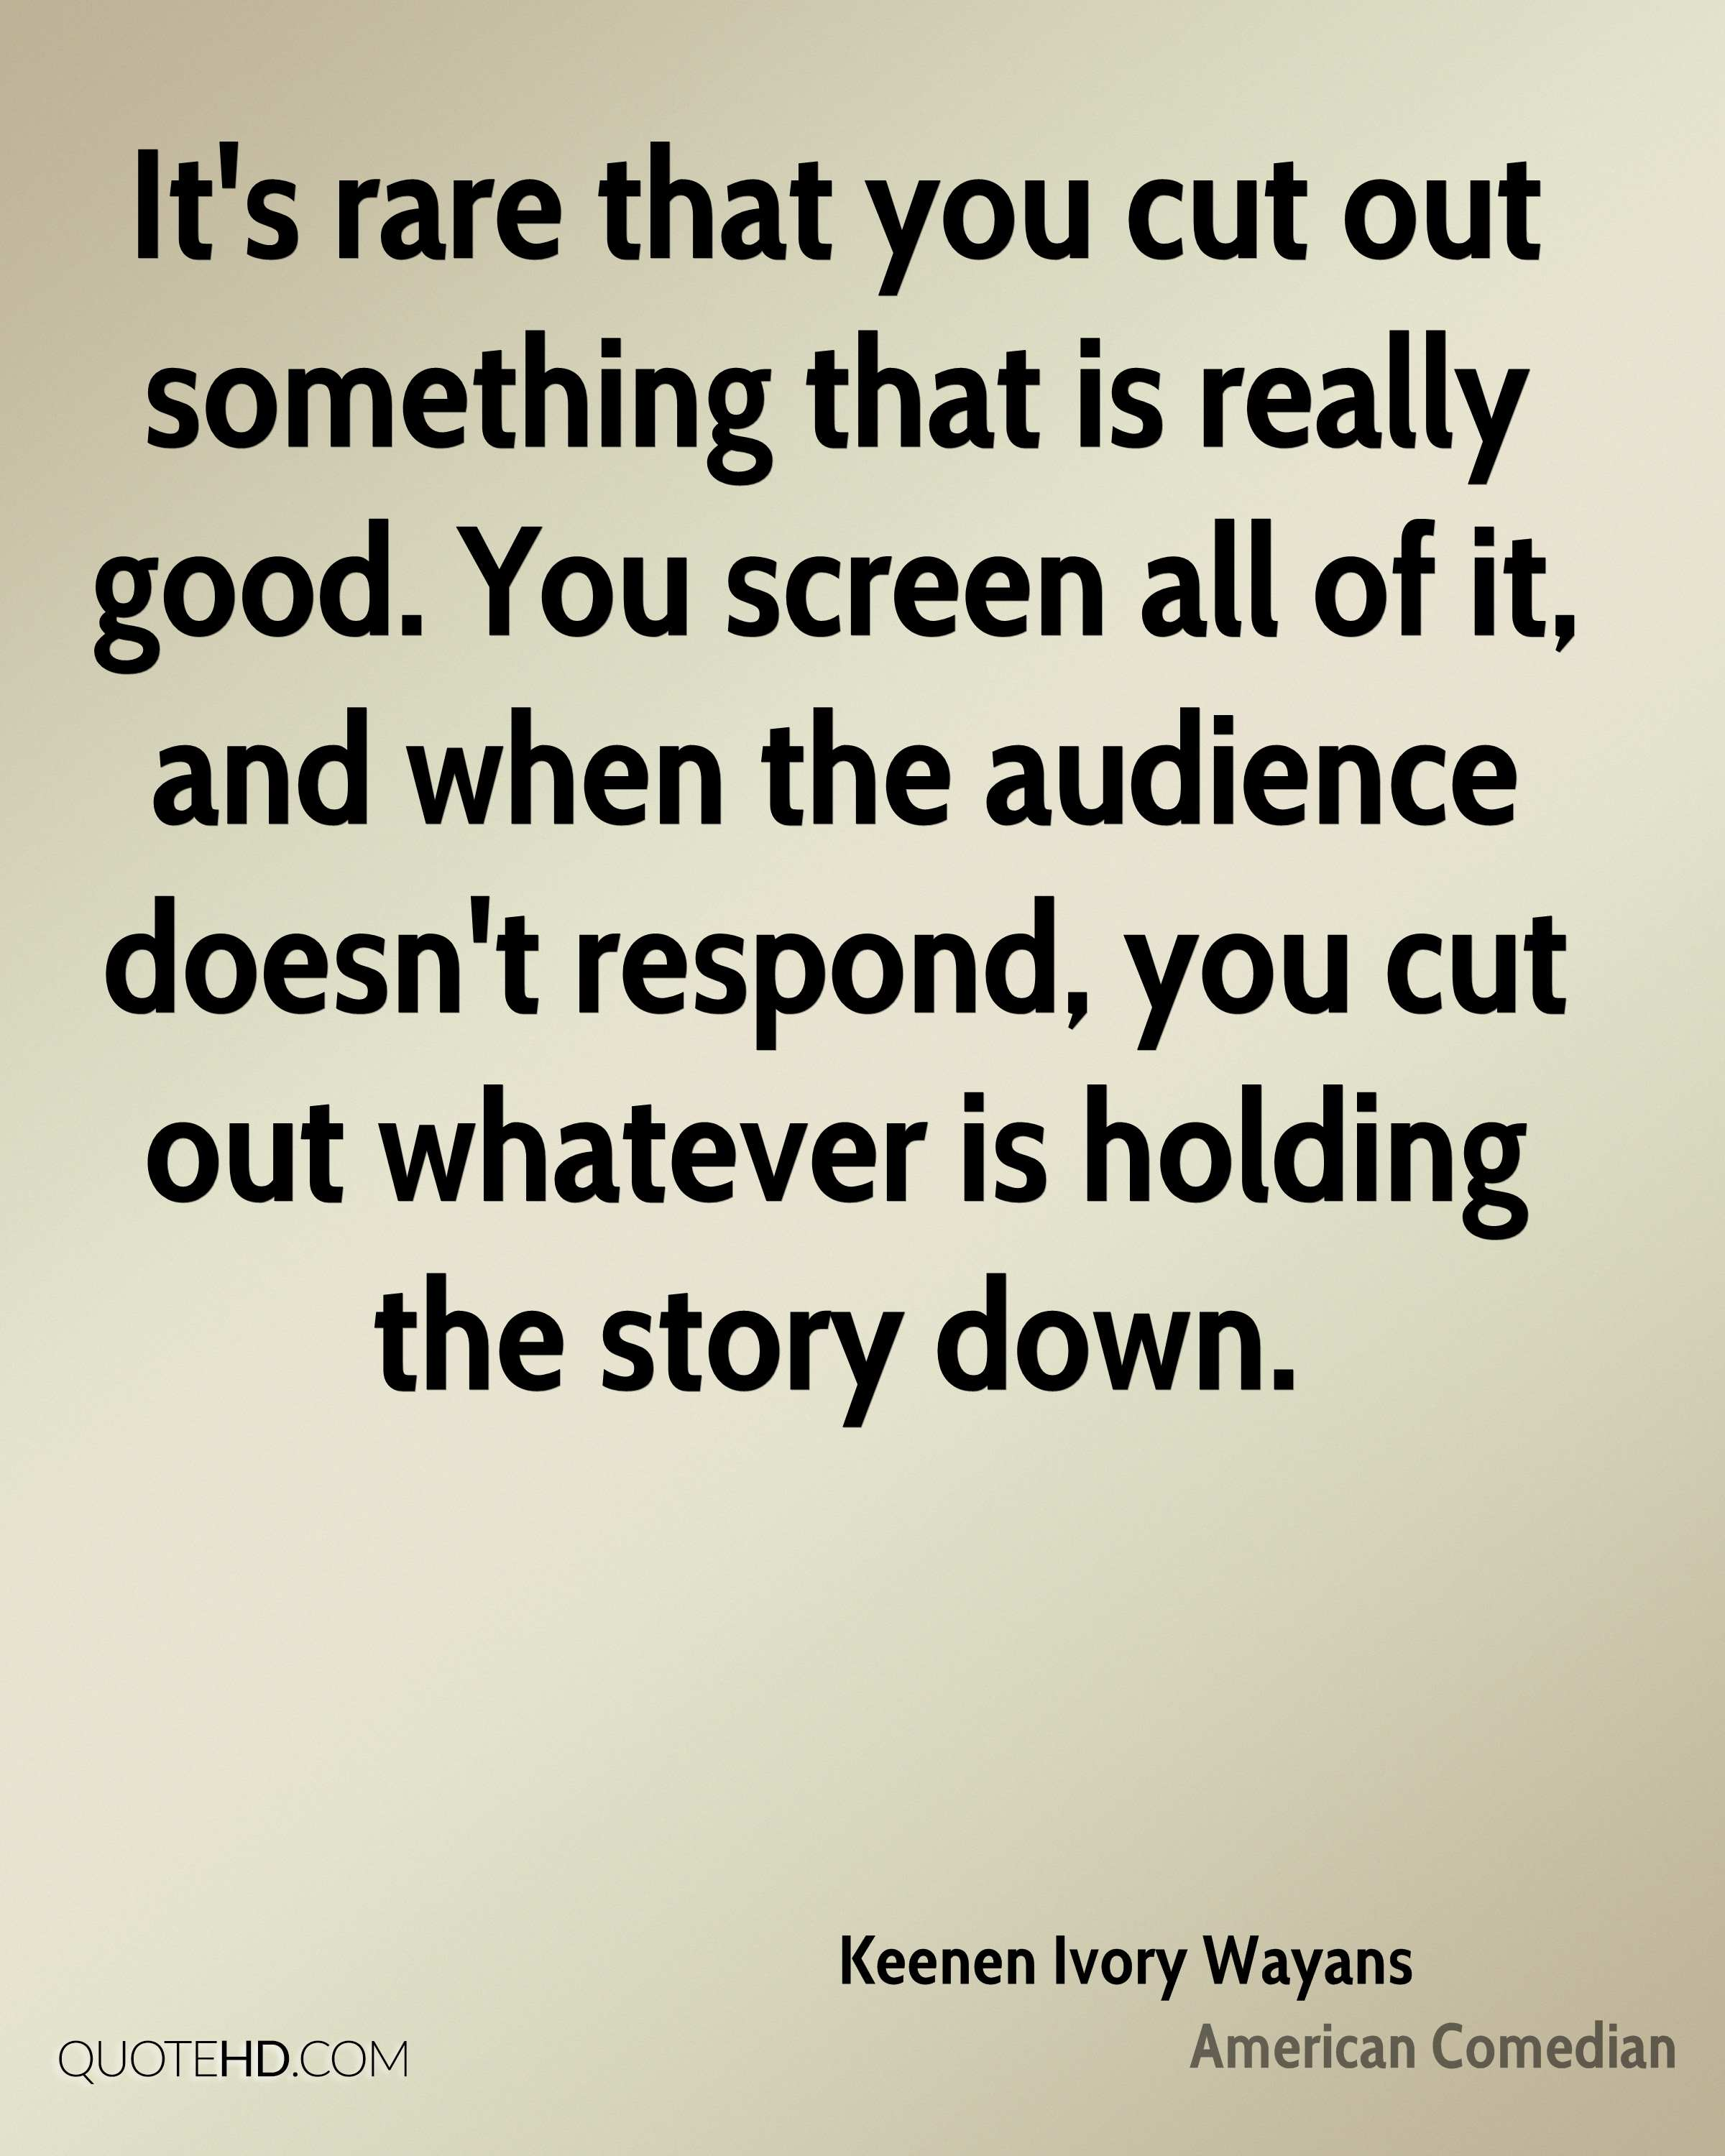 It's rare that you cut out something that is really good. You screen all of it, and when the audience doesn't respond, you cut out whatever is holding the story down.